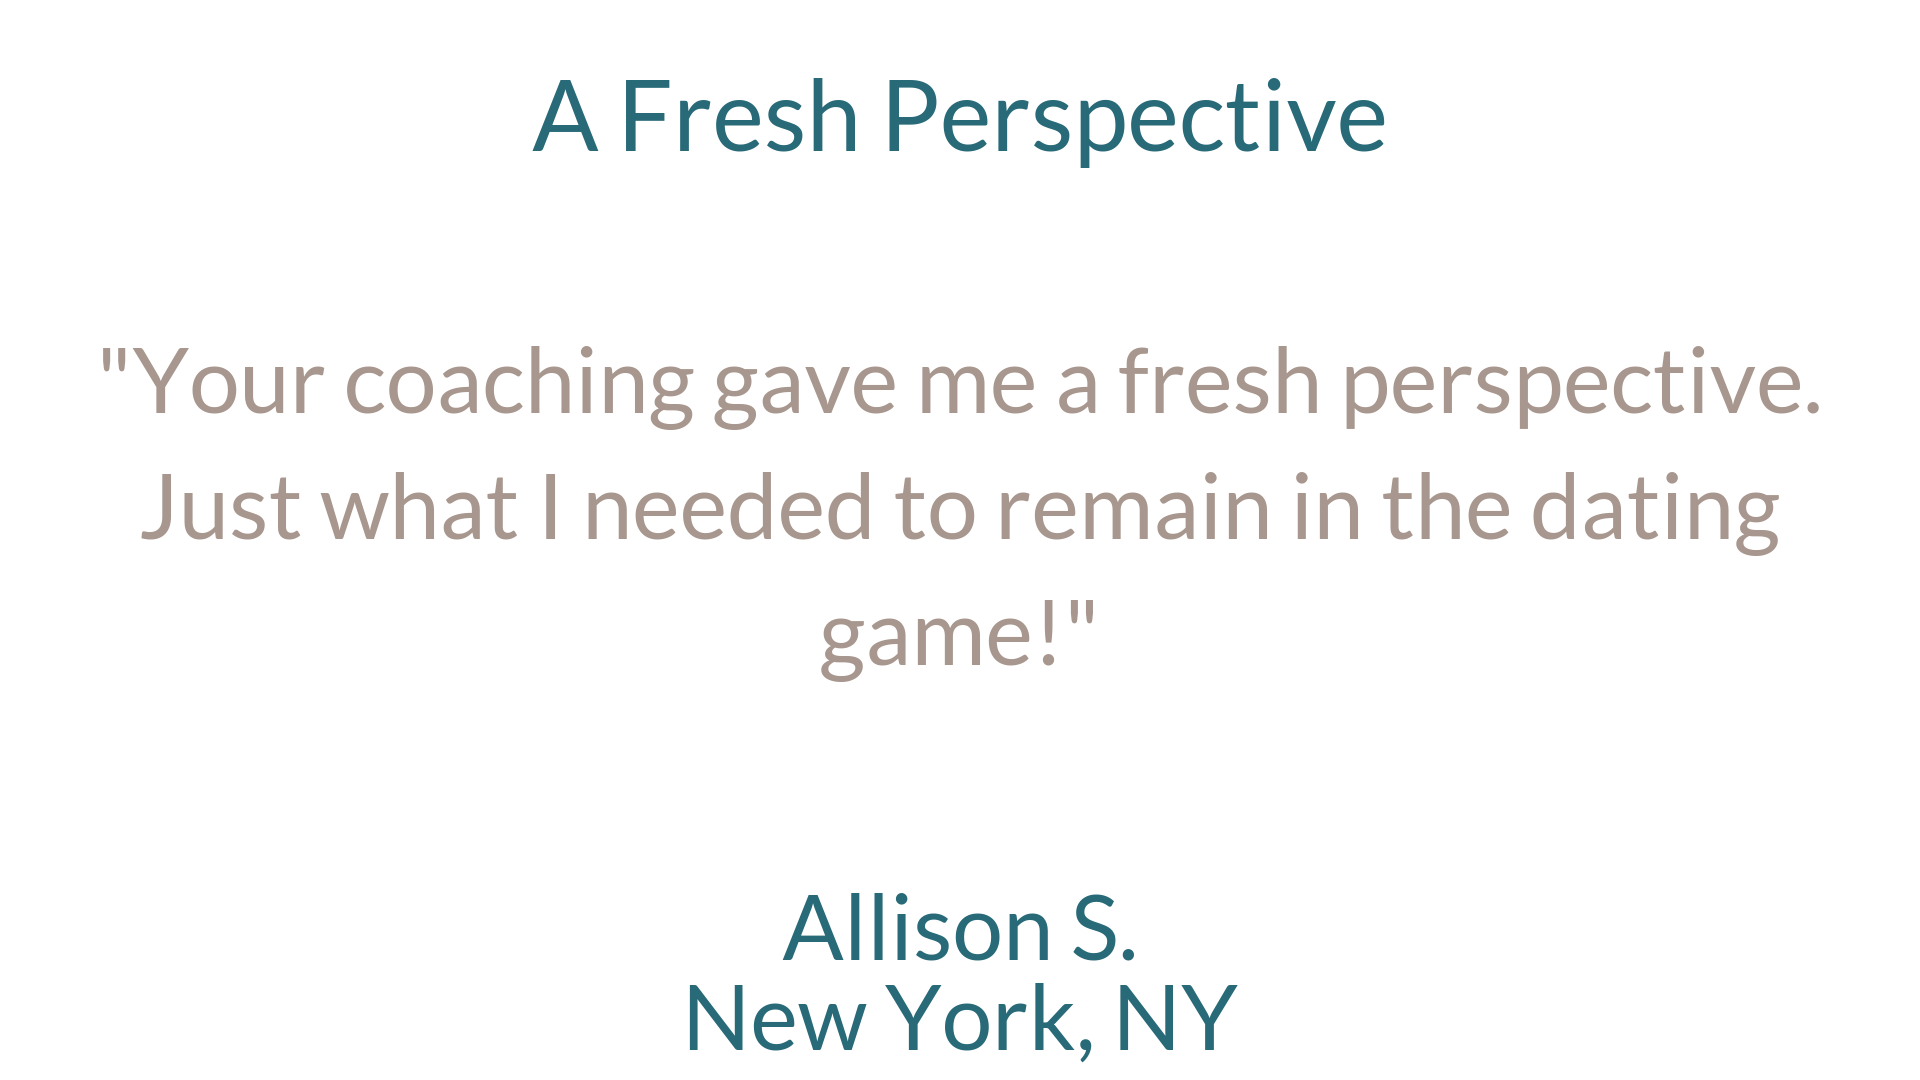 A Fresh Perspective%22Your coaching gave me a fresh perspective. Just what I needed to remain in the dating game!%22Allison S.New York, NY-2.png